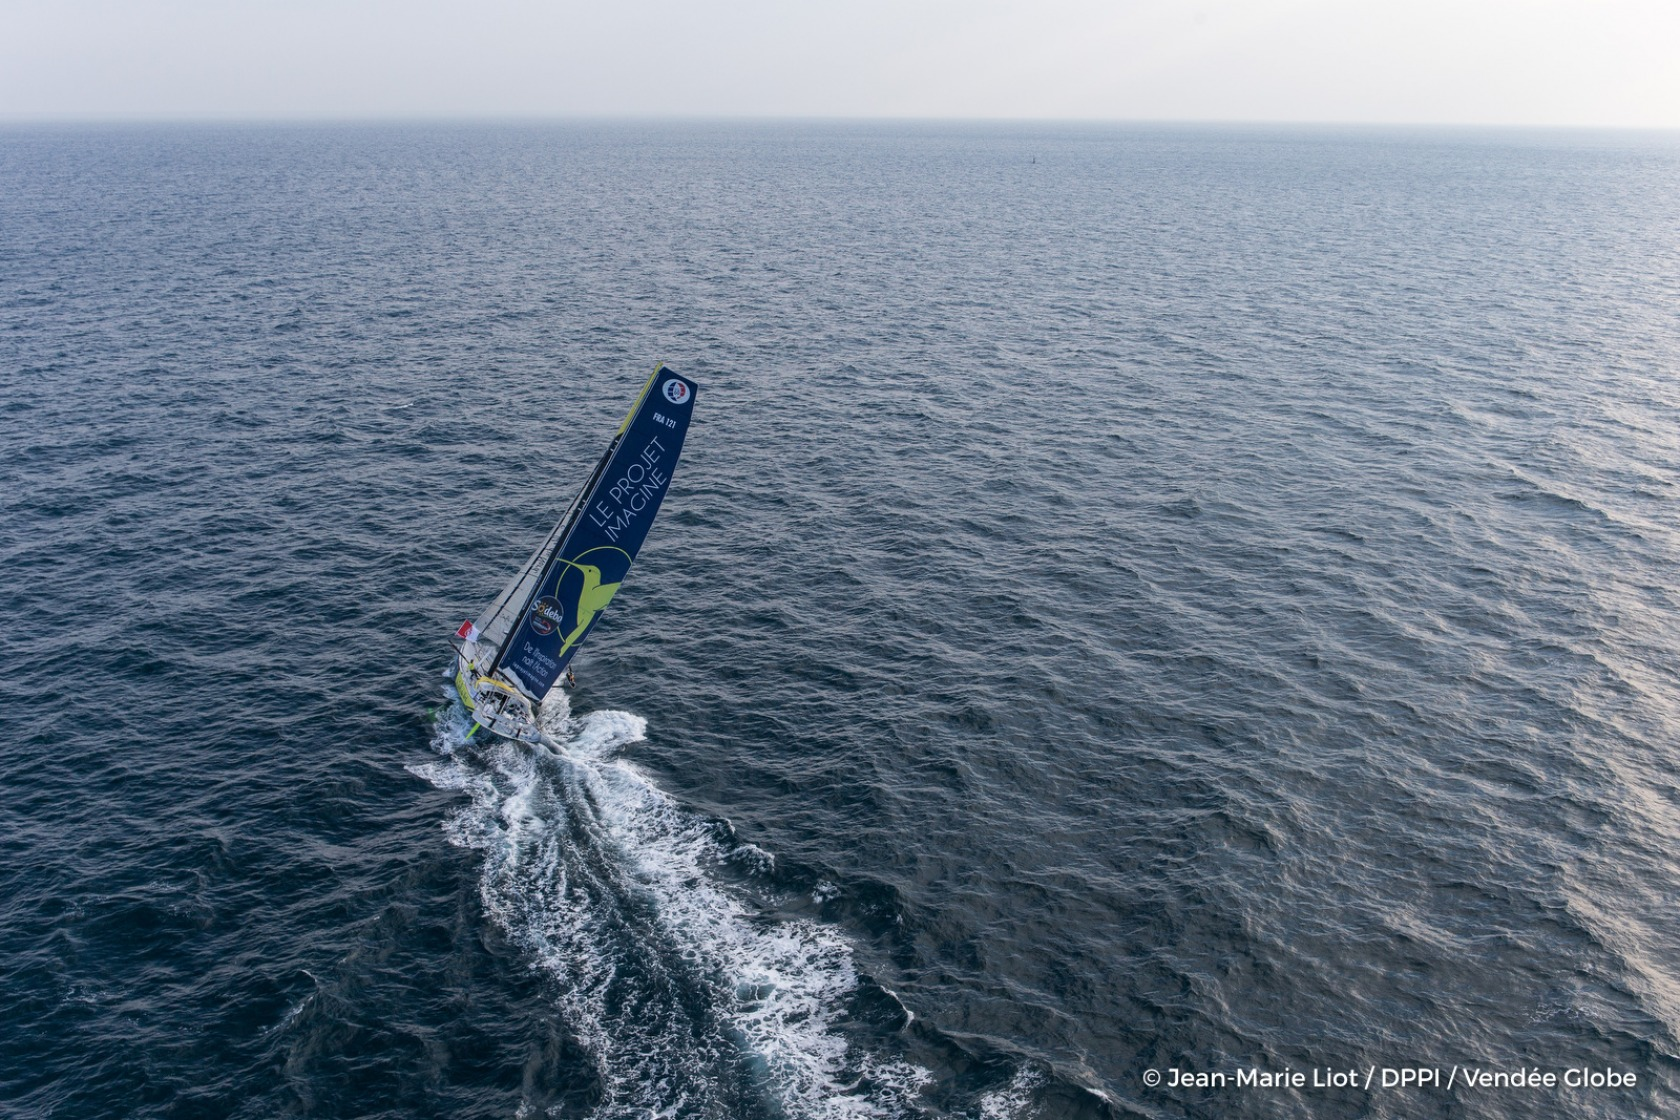 http://www.vendeeglobe.org/medias/02/35/23507/sailing-aerial-images-of-the-imoca-boat-le-souffle-du-nord-skipper-thomas-ruyant-fra-during-training-for-the-vendee-globe-2016-off-belle-ile-in-south-brittany-on-october-13-2016-photo-jean-marie-liot-dppi-vendee-globeimages-aeriennes-de-le-r-1680-1200.jpg